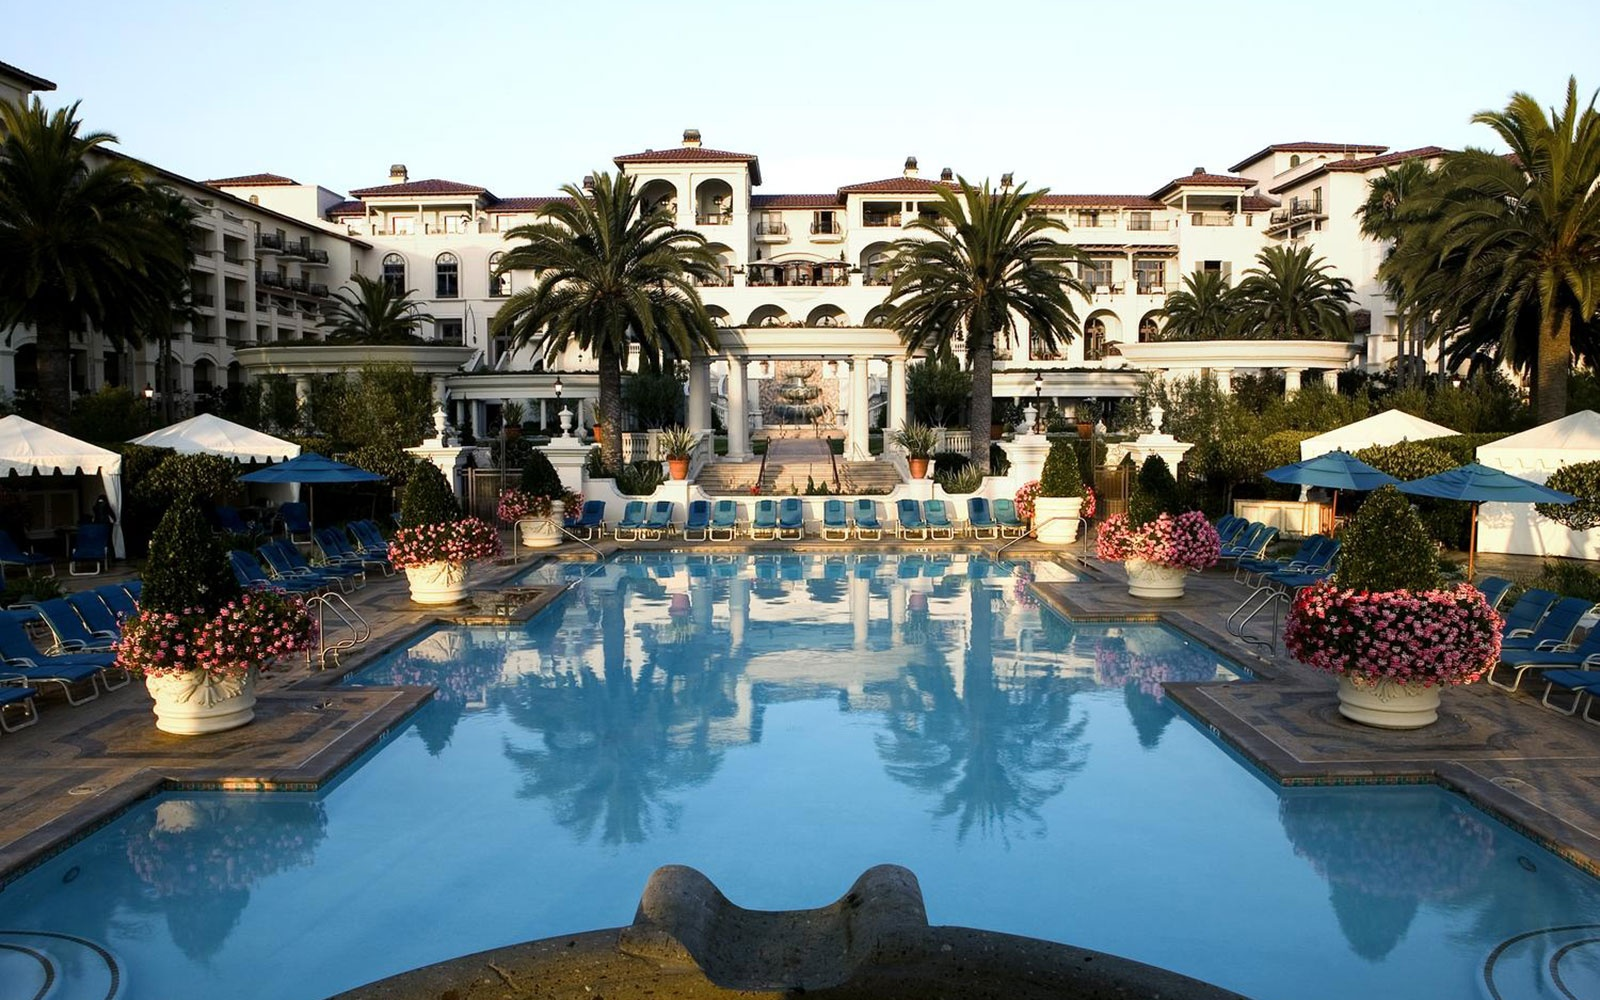 St. Regis Monarch Beach Dana Point